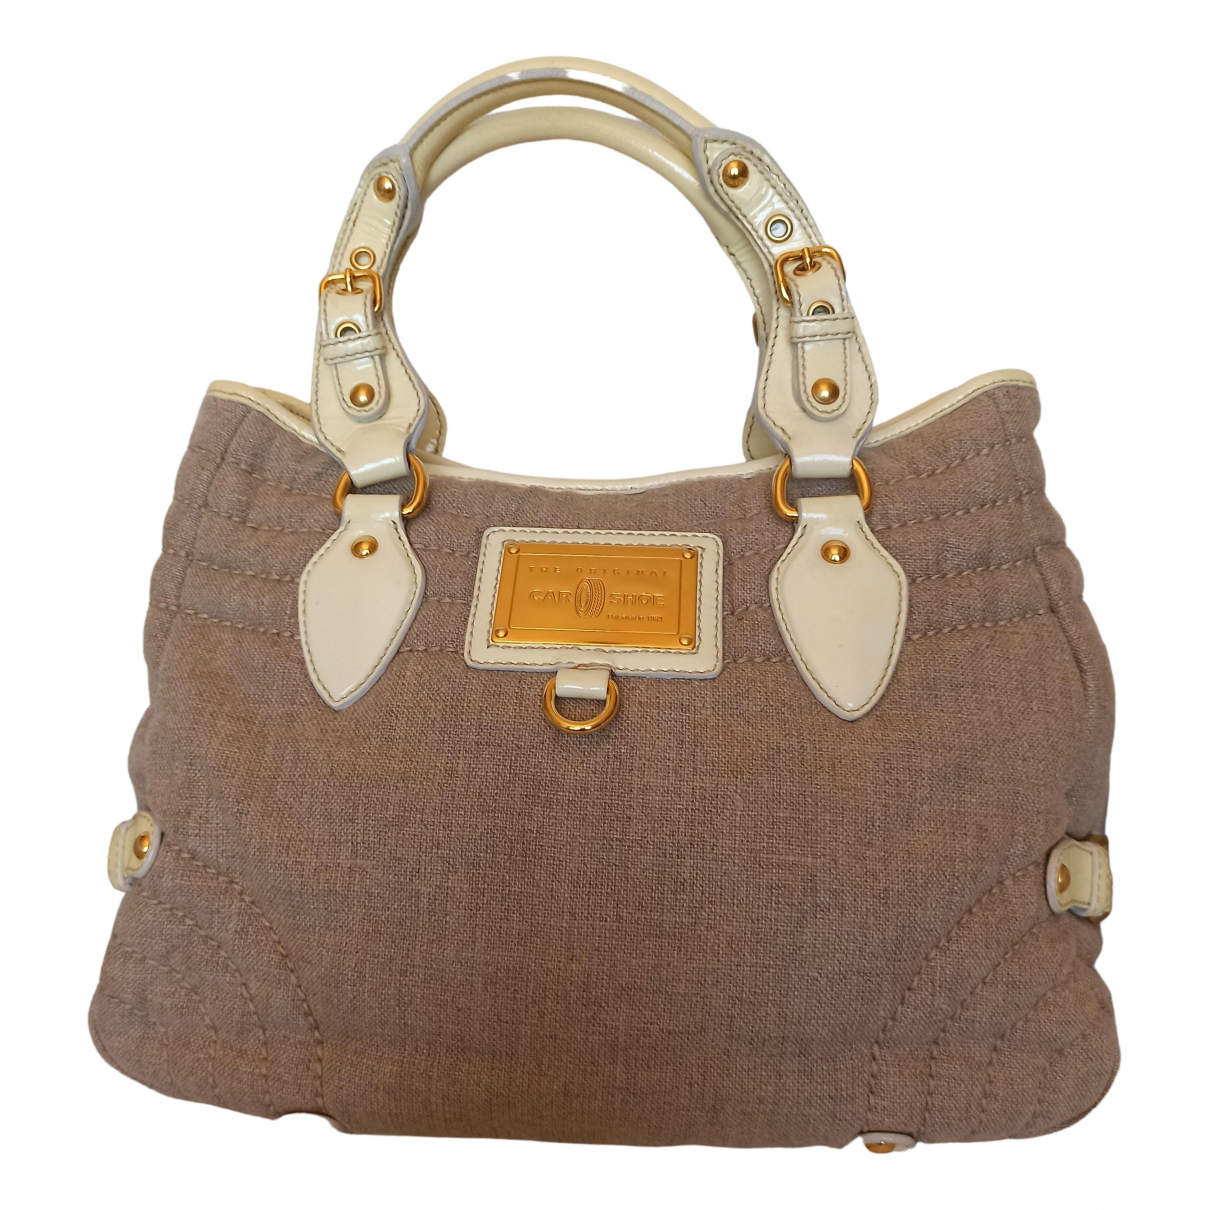 Carshoe \N Beige Cloth handbag for Women \N